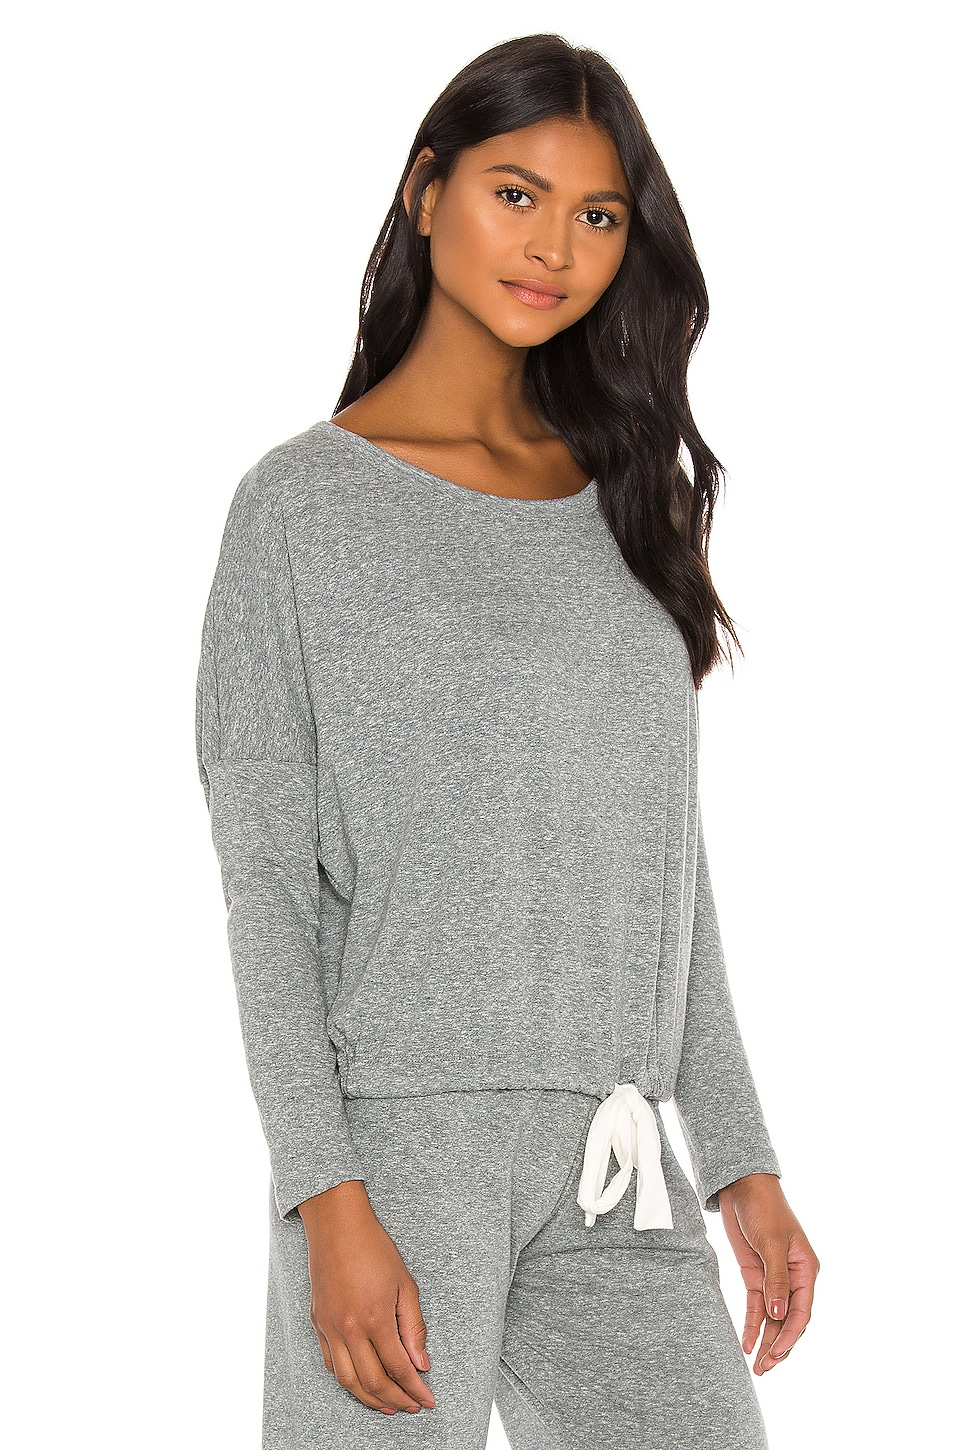 eberjey Heather Slouchy Tee in Heather Gray